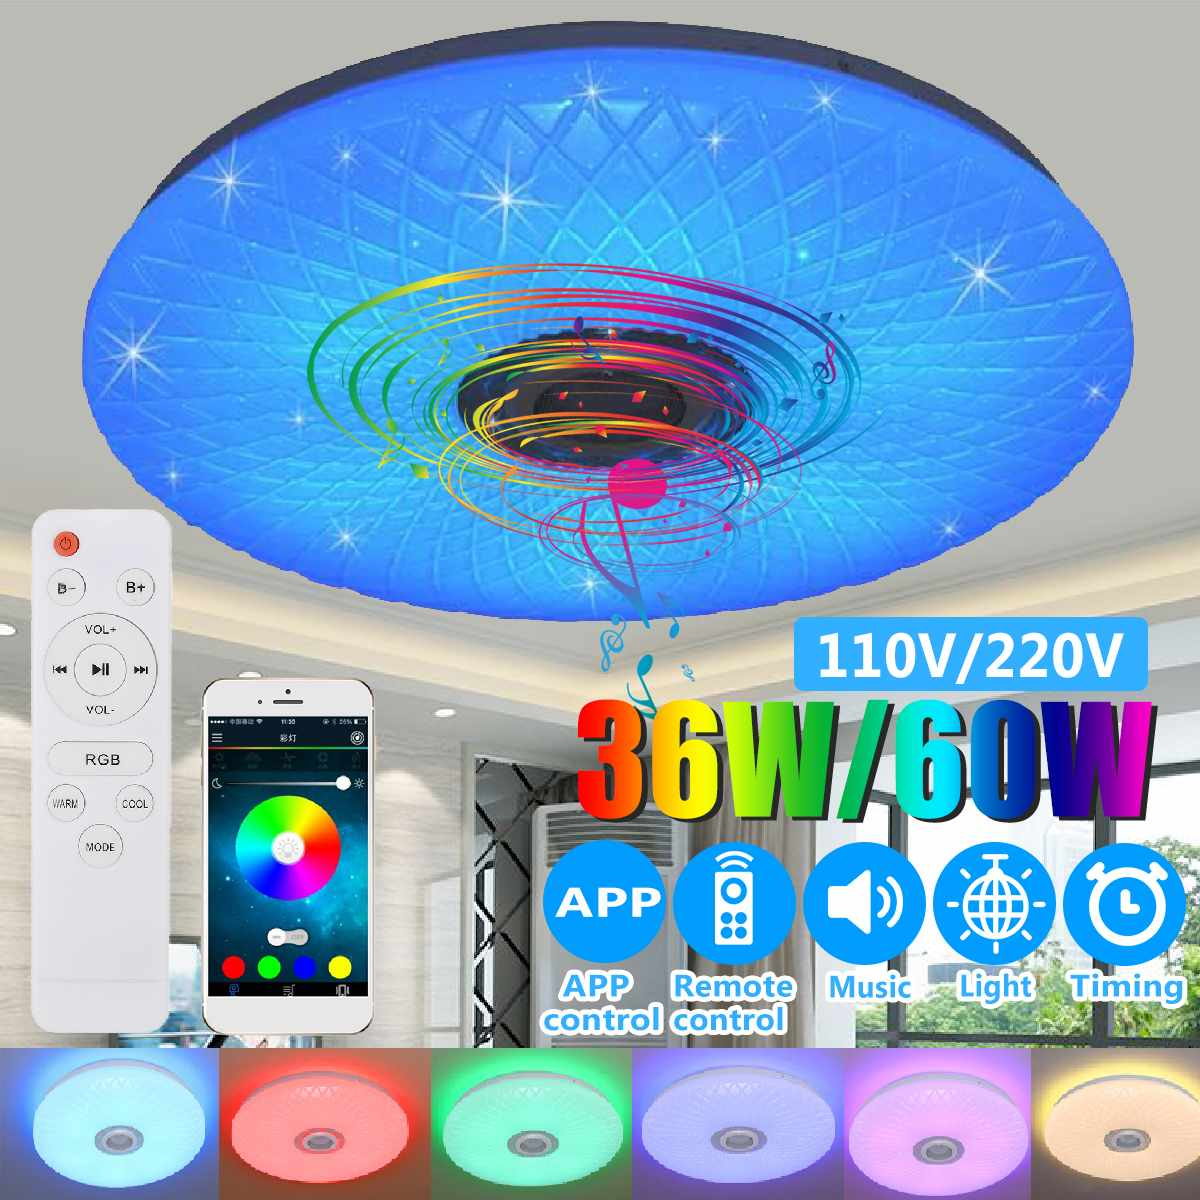 Modern RGB LED Ceiling Light home lighing 36W 60W 40cm APP Remote Control bluetooth Music Light Modern RGB LED Ceiling Light home lighing 36W/60W 40cm APP Remote Control bluetooth Music Light Bedroom Lamp Smart Ceiling Lamp